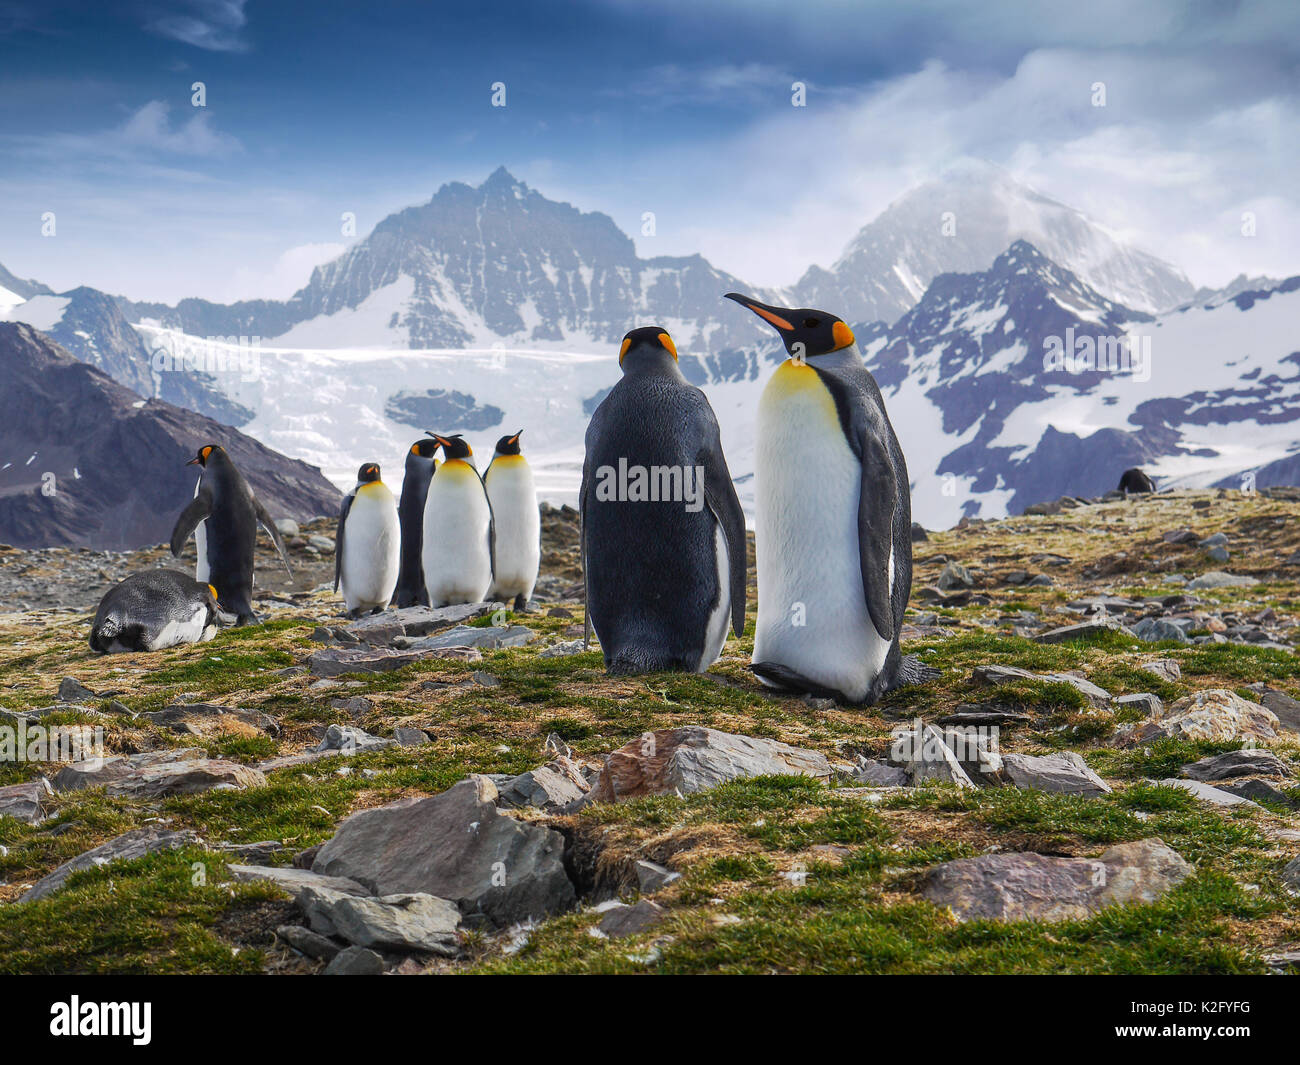 Low angle view of a group of king penguins standing in front of dramatic snow-capped mountains on South Georgia Island in the South Atlantic Ocean. - Stock Image